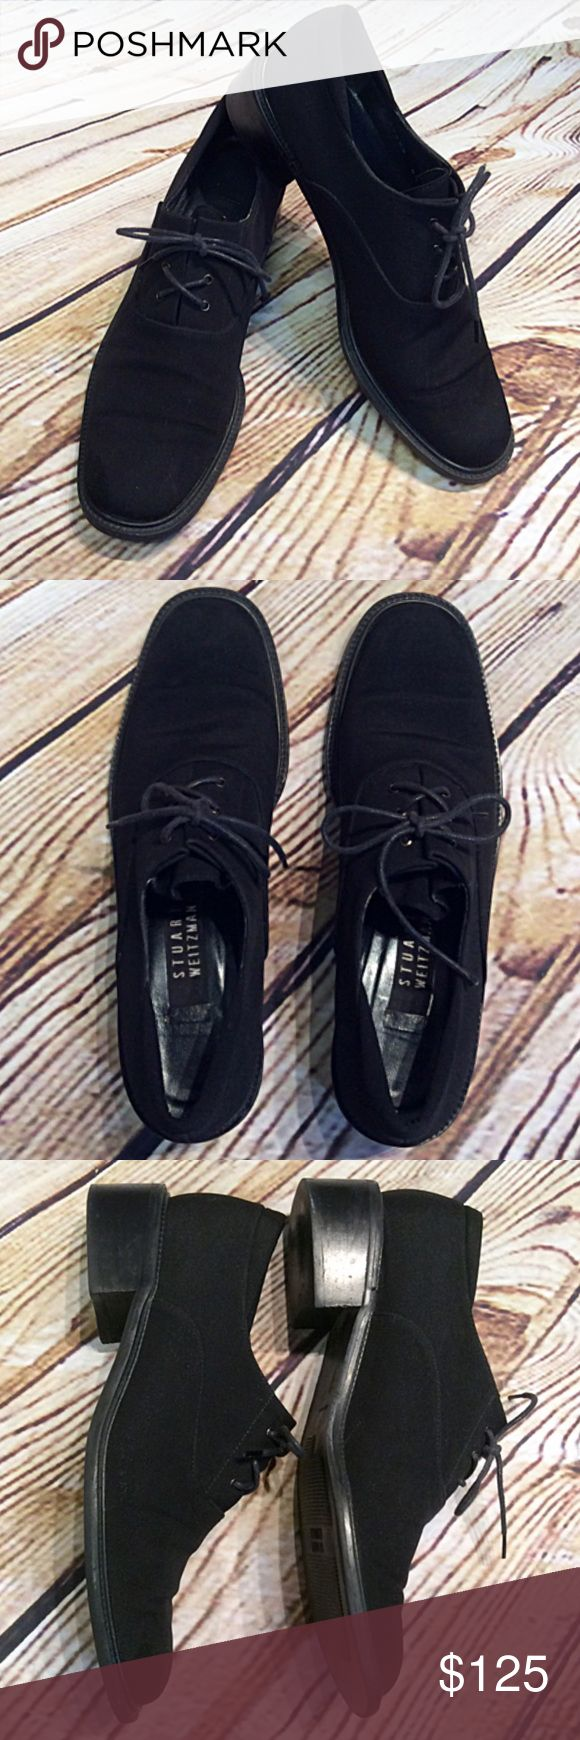 Stuart Weitzman Waterproof Gore Tex Oxford/Shoes These are fabulous for fall and winter. They are made of a Gore Tex fabric to repel water. Very sleek and stylish. Gently used Stuart Weitzman Shoes Flats & Loafers